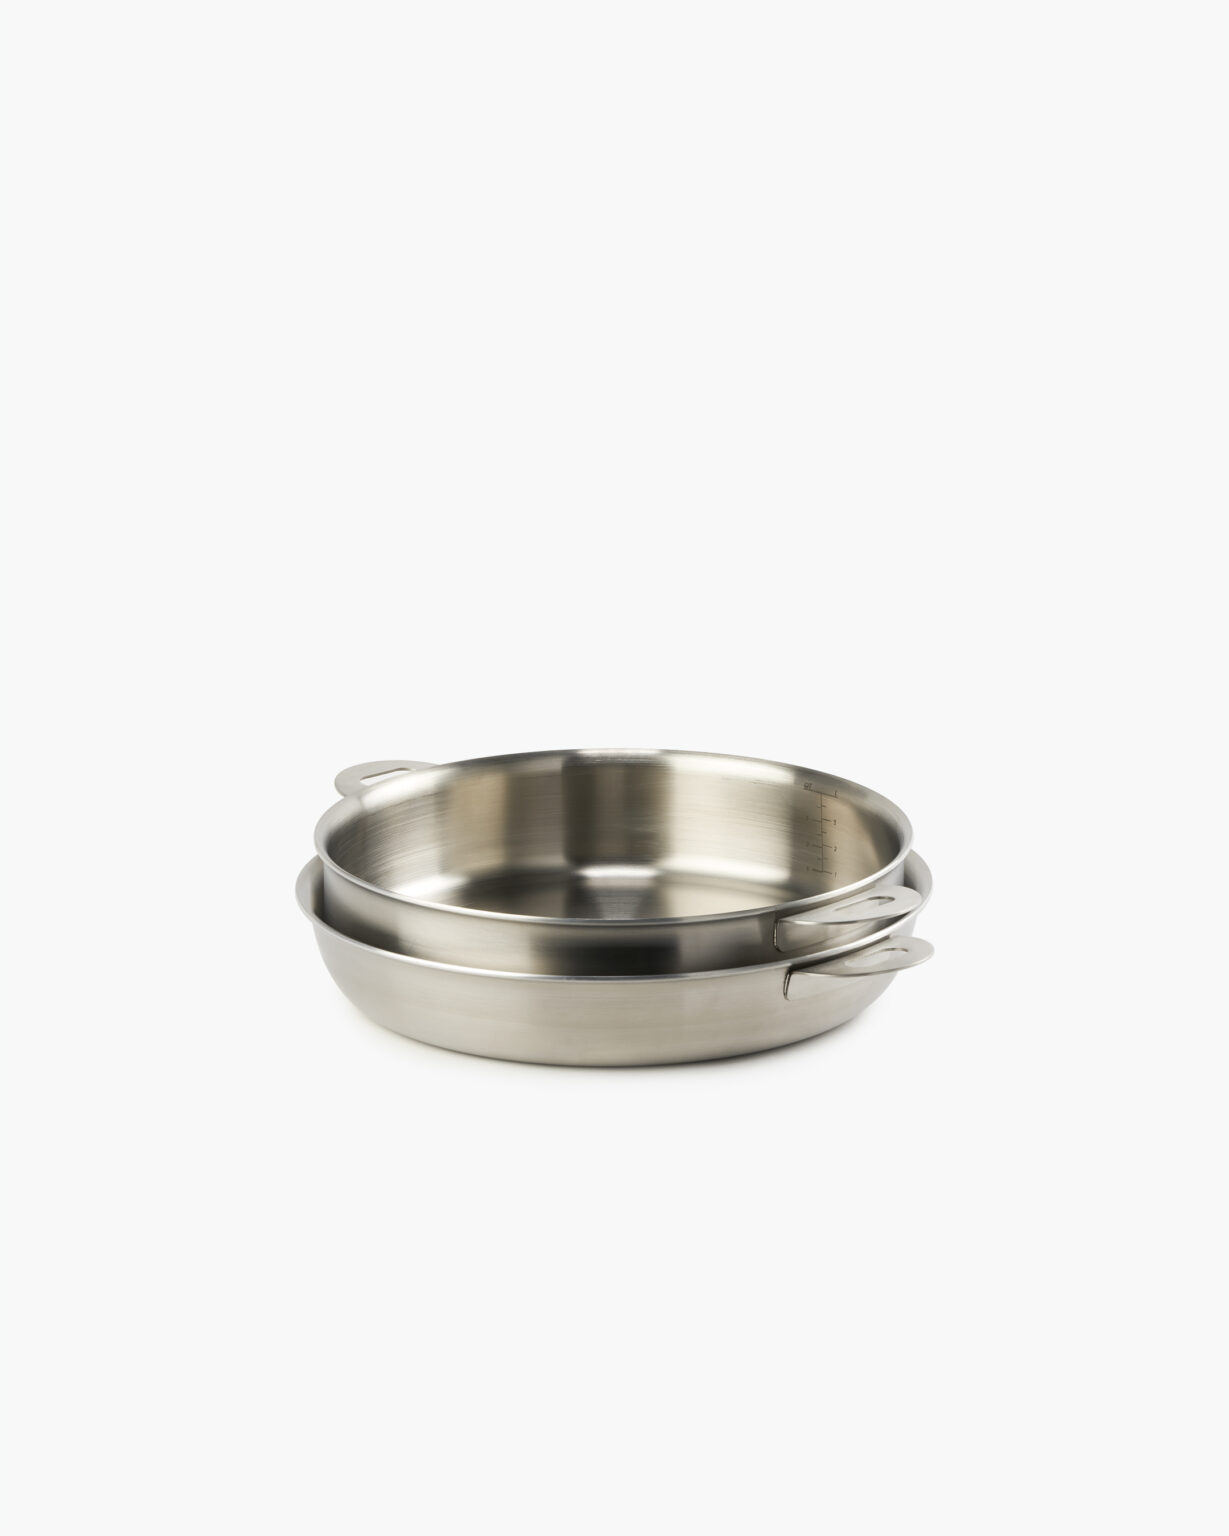 ENSEMBL Stackware Core2 Stainless Steel Fully Clad Cookware